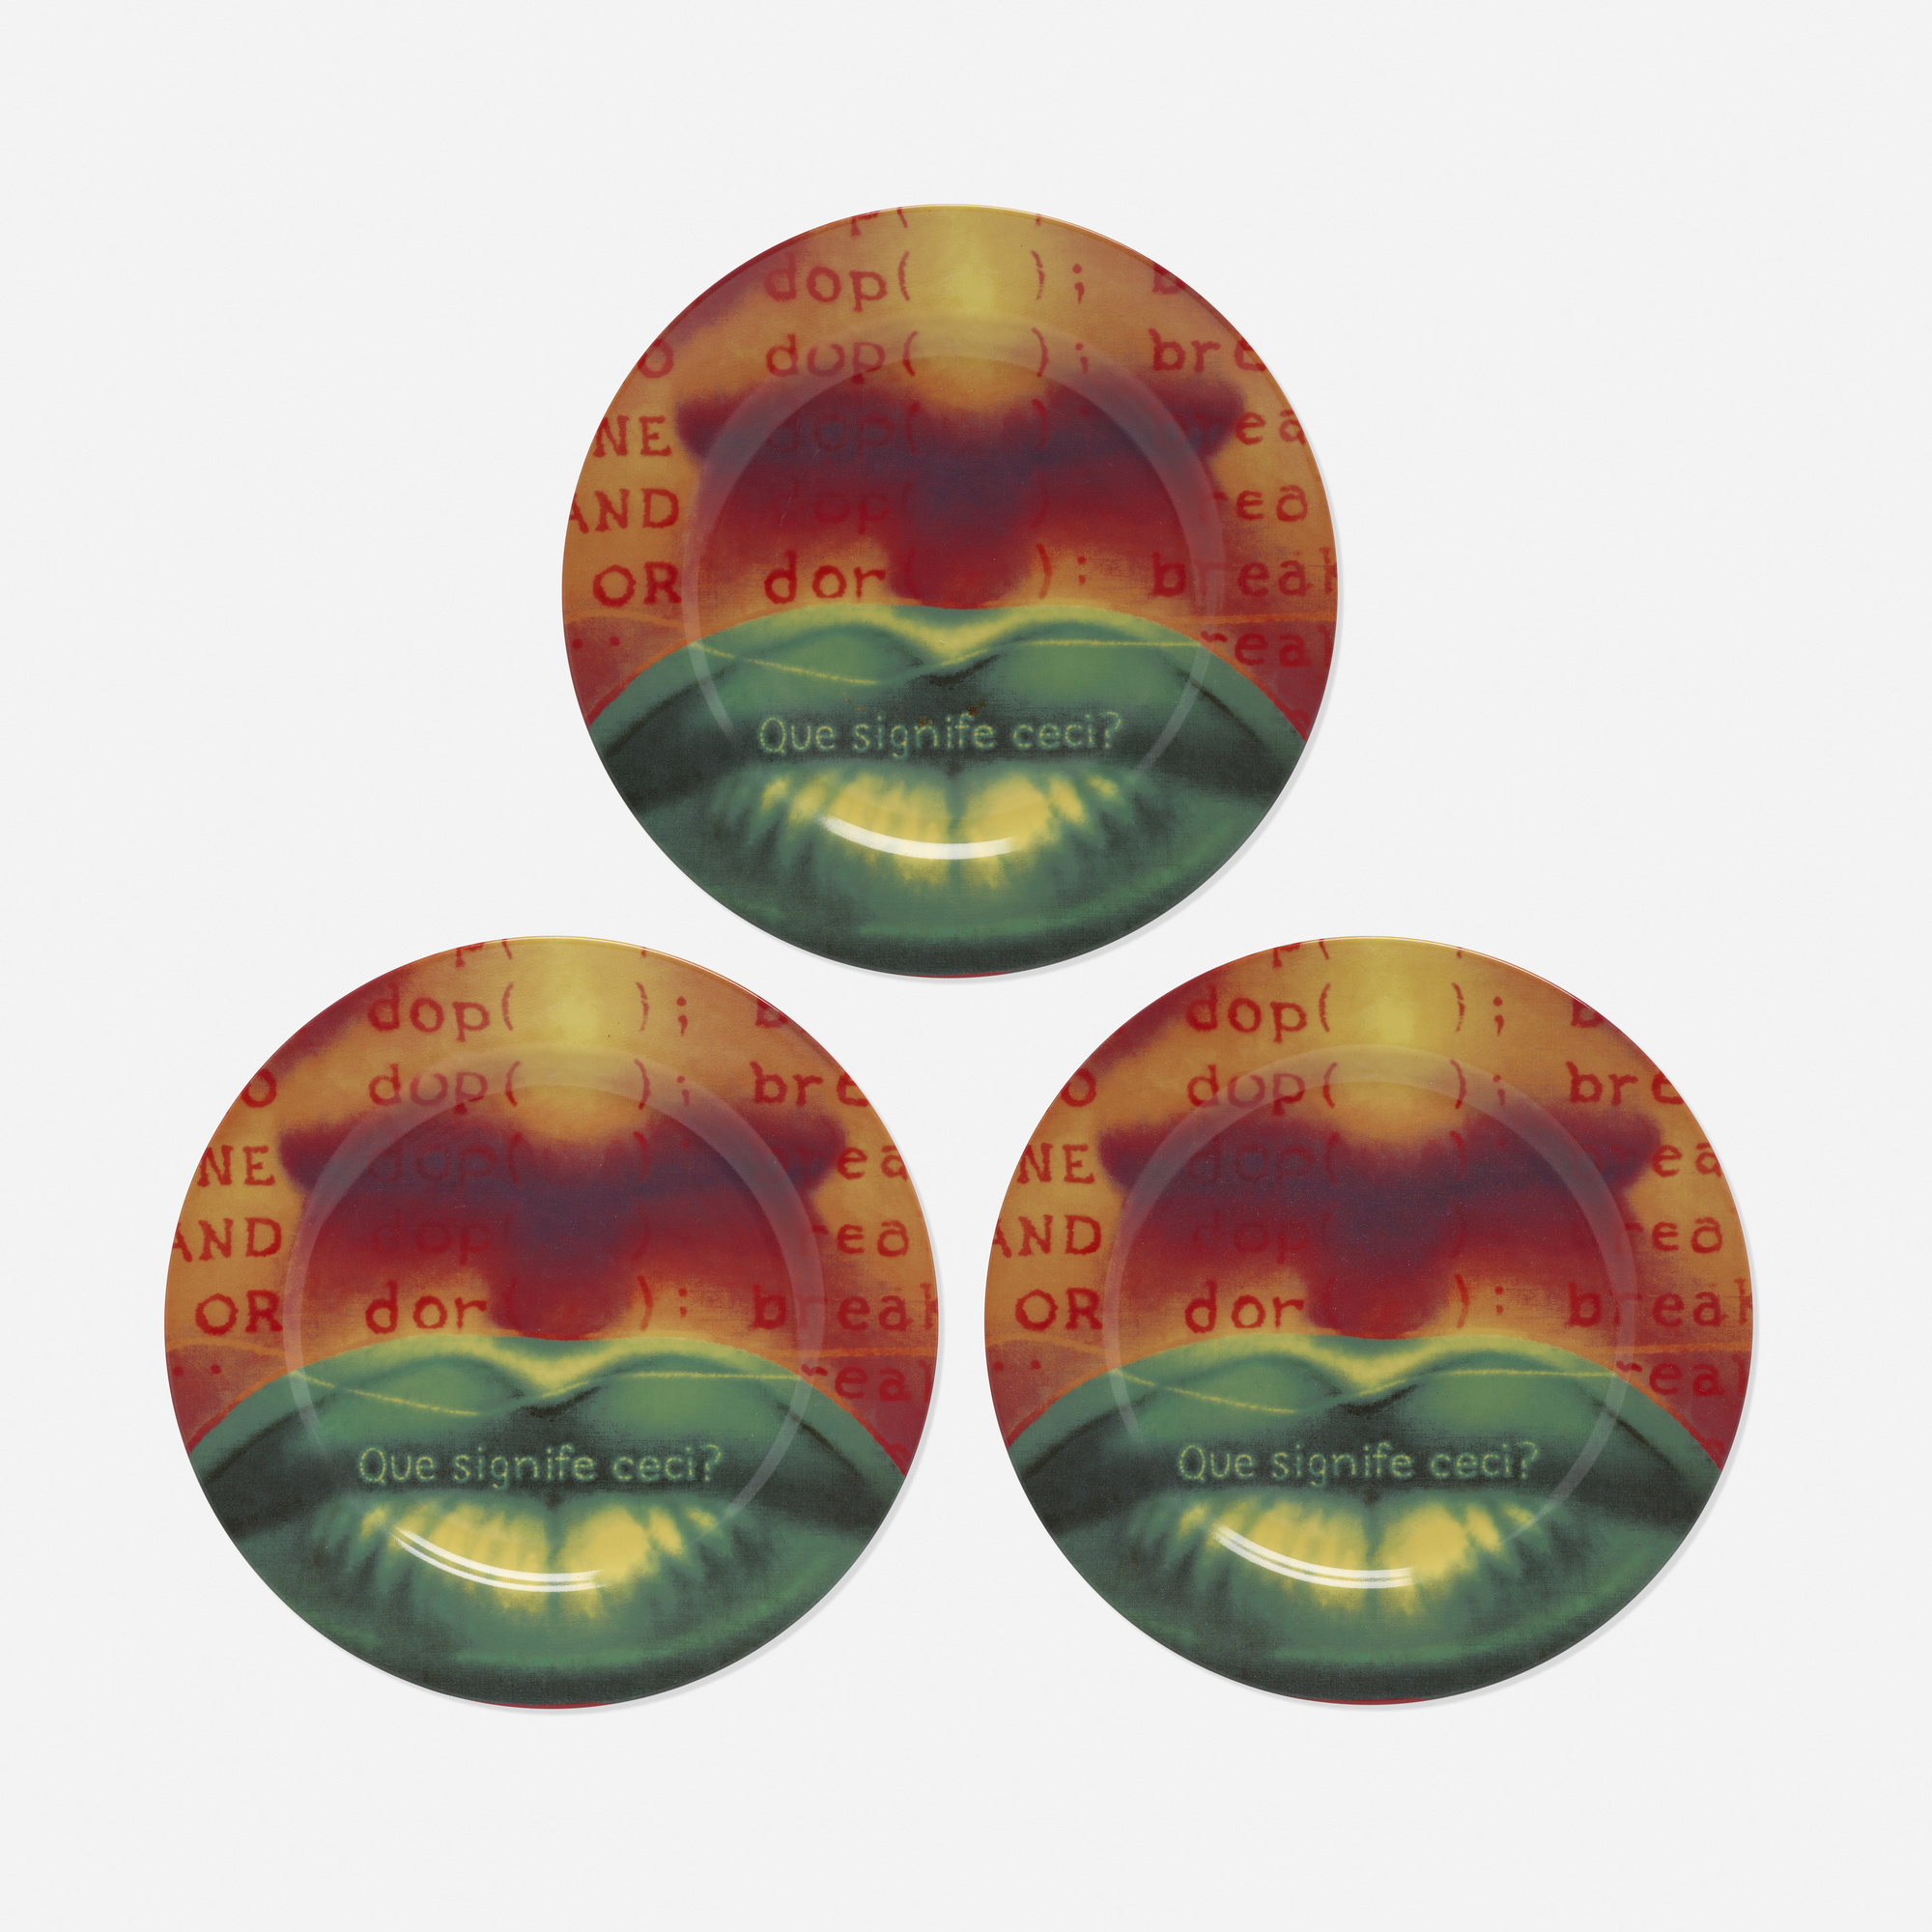 299: Ed Paschke / set of three plates (from Editions for the Renaissance Society) (1 of 2)